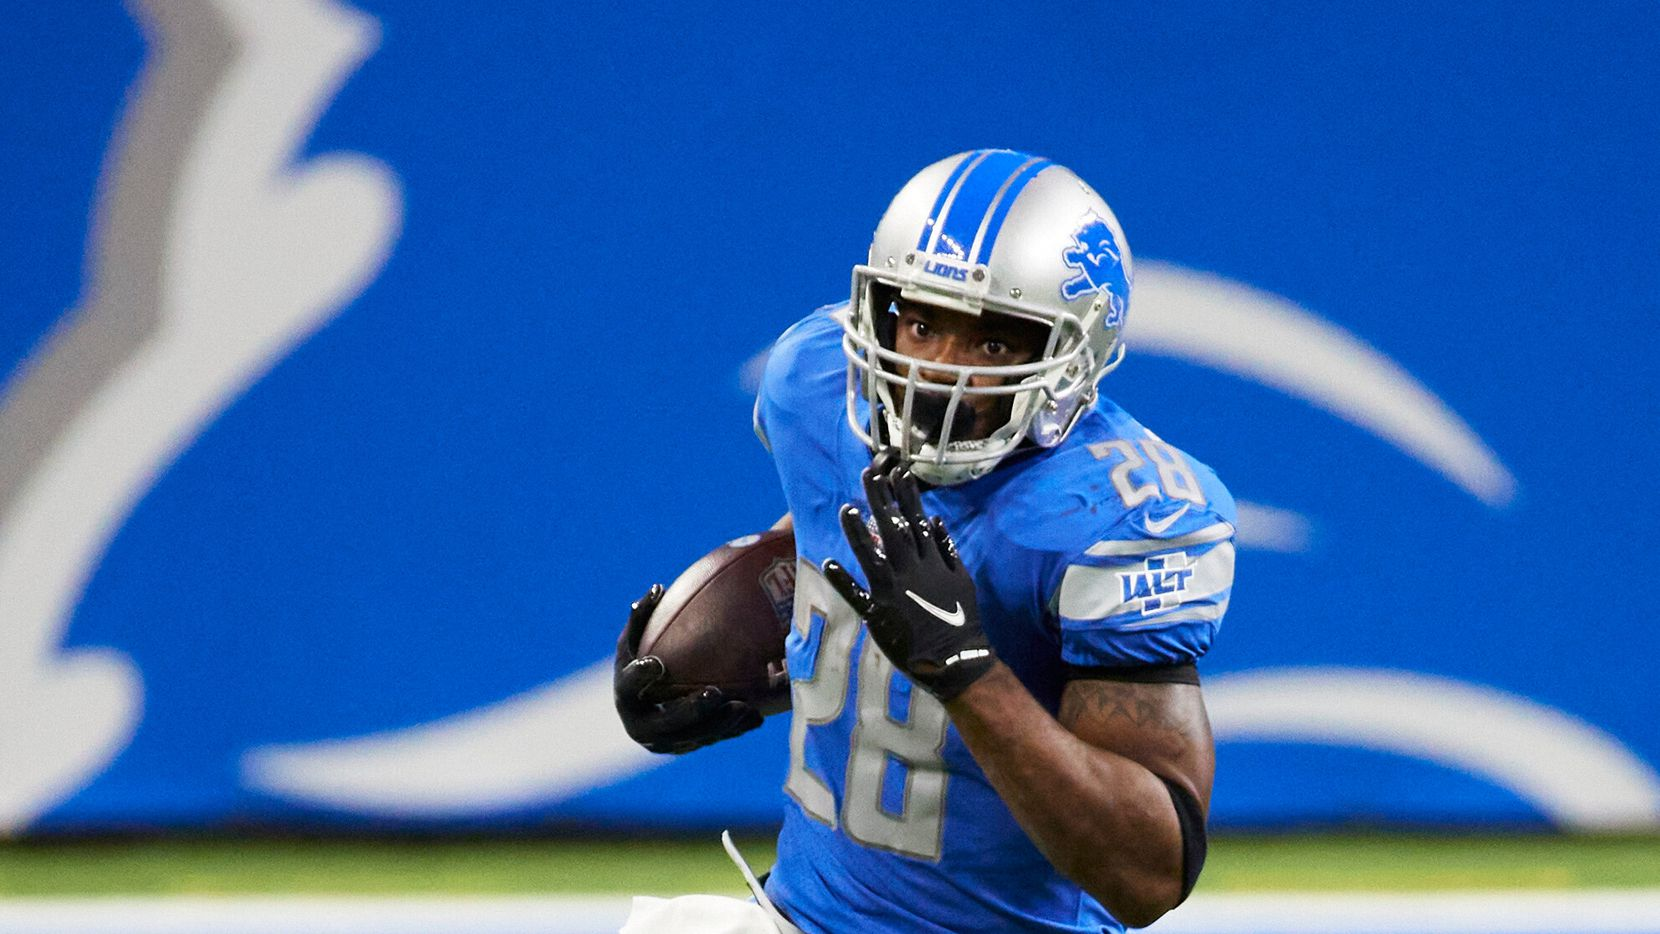 Detroit Lions running back Adrian Peterson (28) rushes against the Minnesota Vikings during an NFL football game, Saturday, Jan. 3, 2021, in Detroit. (AP Photo/Rick Osentoski)